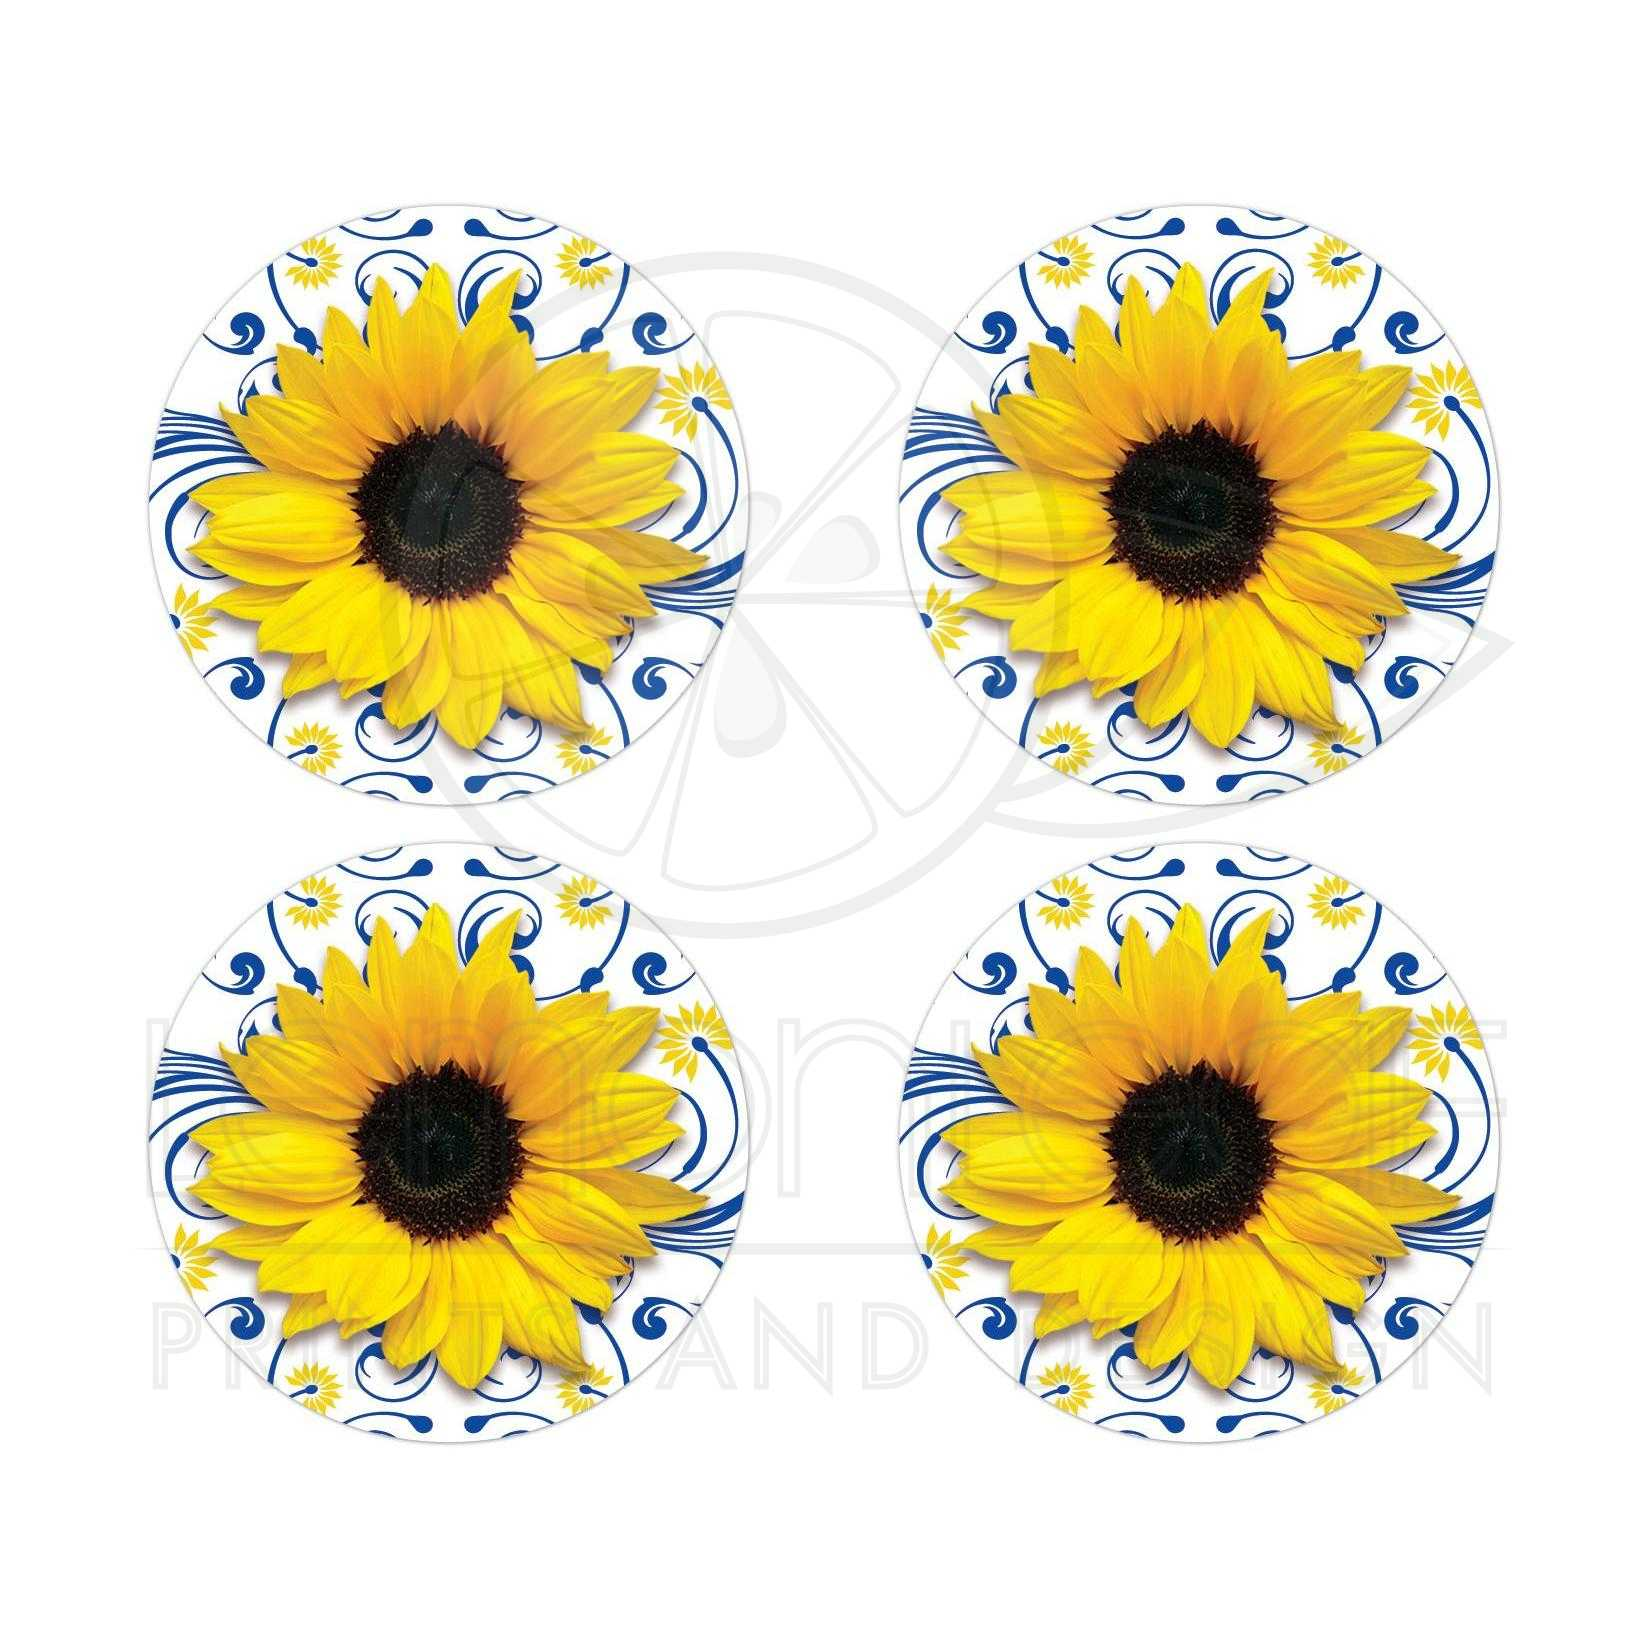 Royal blue yellow sunflower wedding envelope seals or stickers elegant royal blue and yellow sunflower floral wedding envelope seals or wedding stickers mightylinksfo